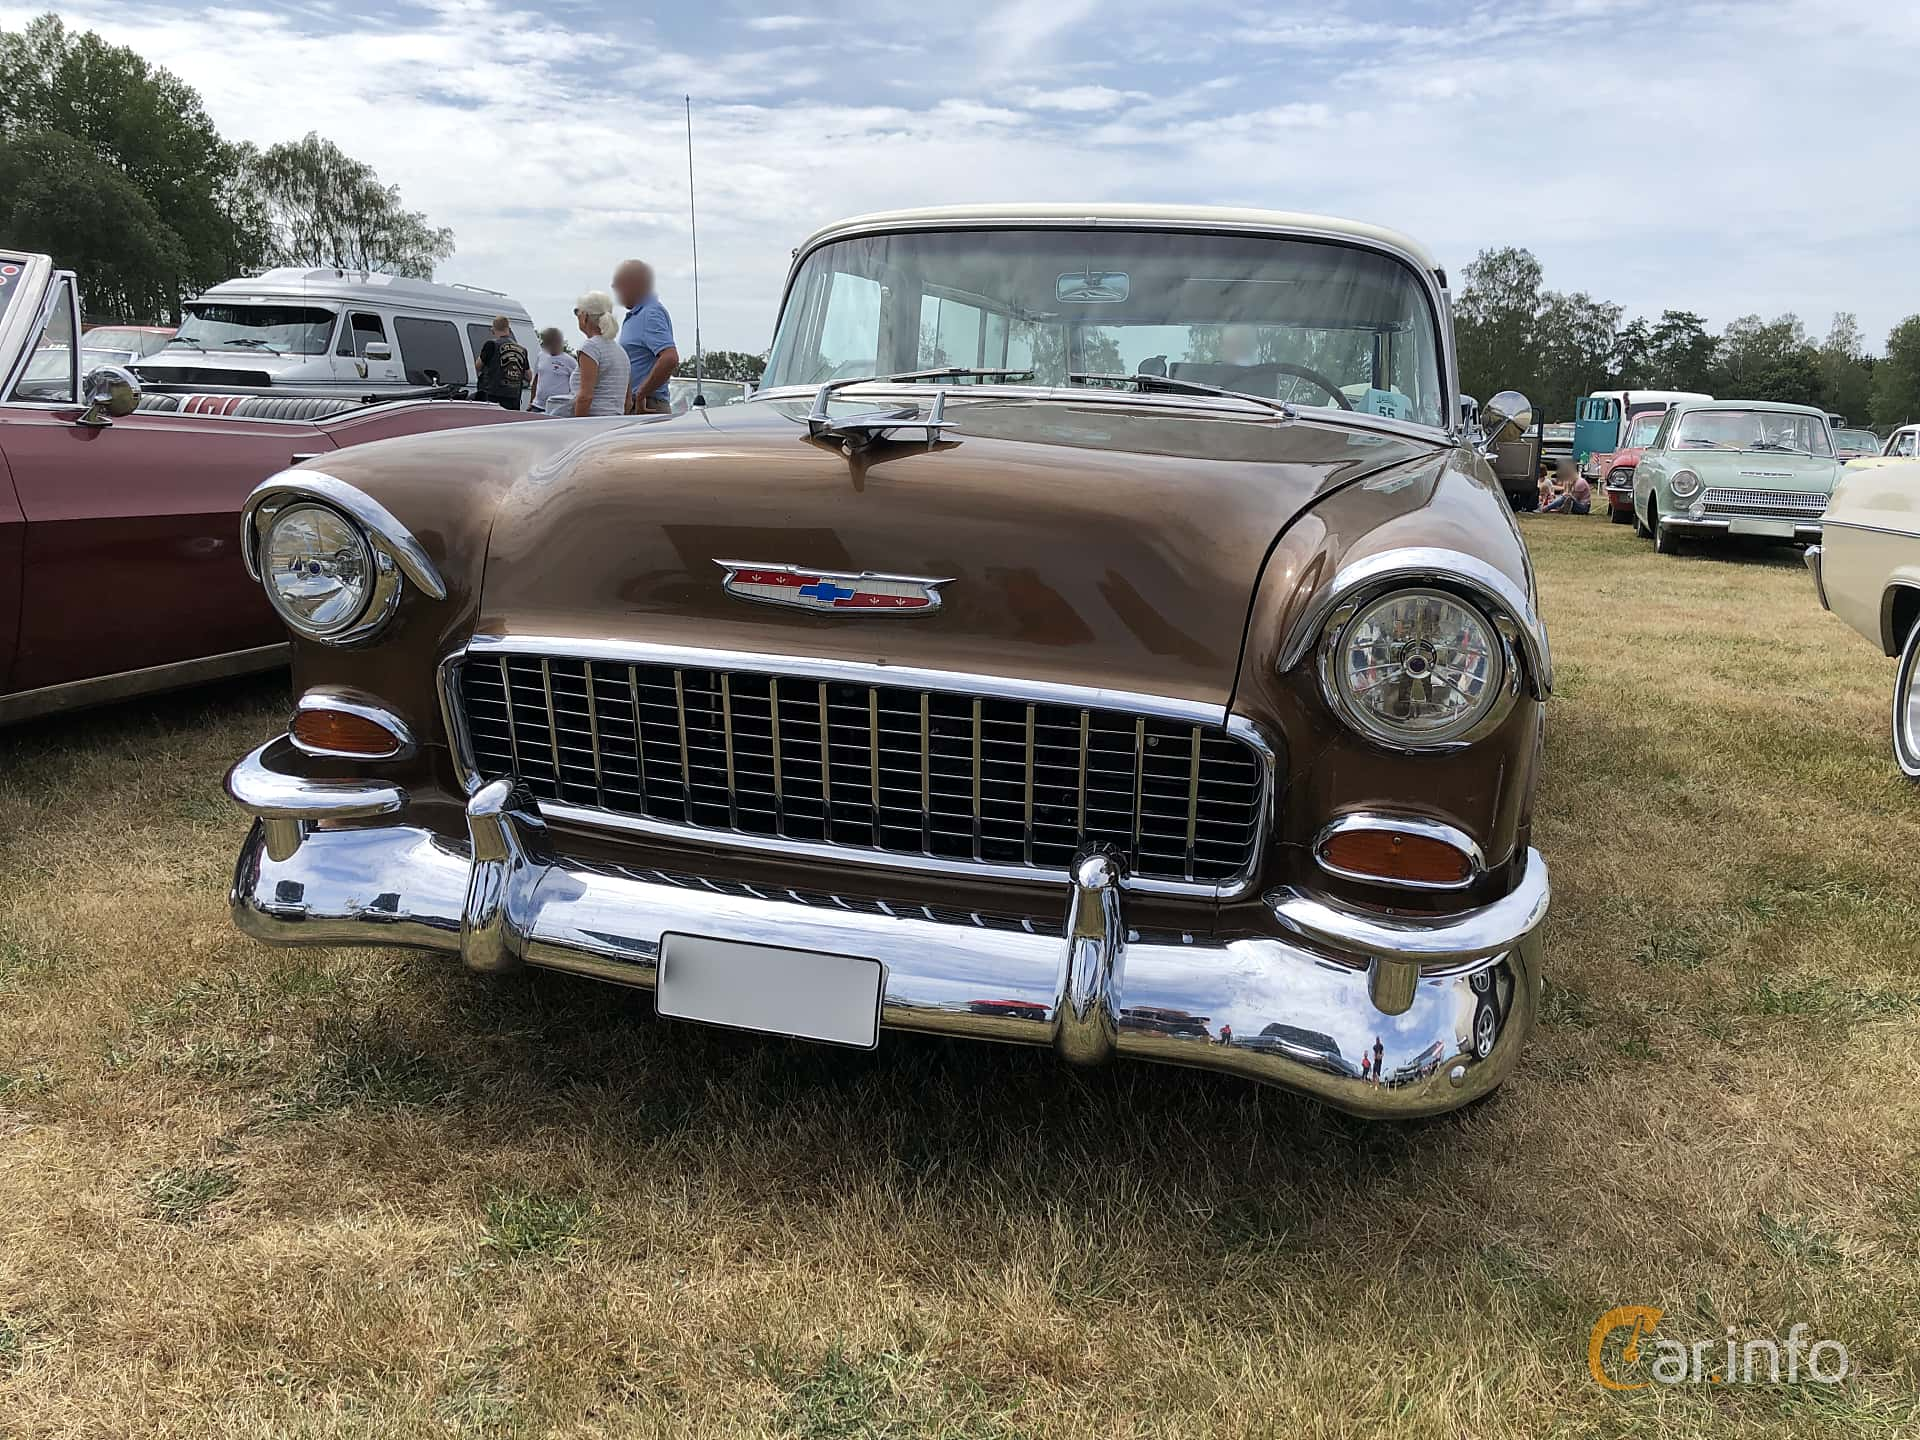 Chevrolet Bel Air Nomad 4.3 V8 Powerglide, 183hp, 1955 at Wheels & Wings 2019